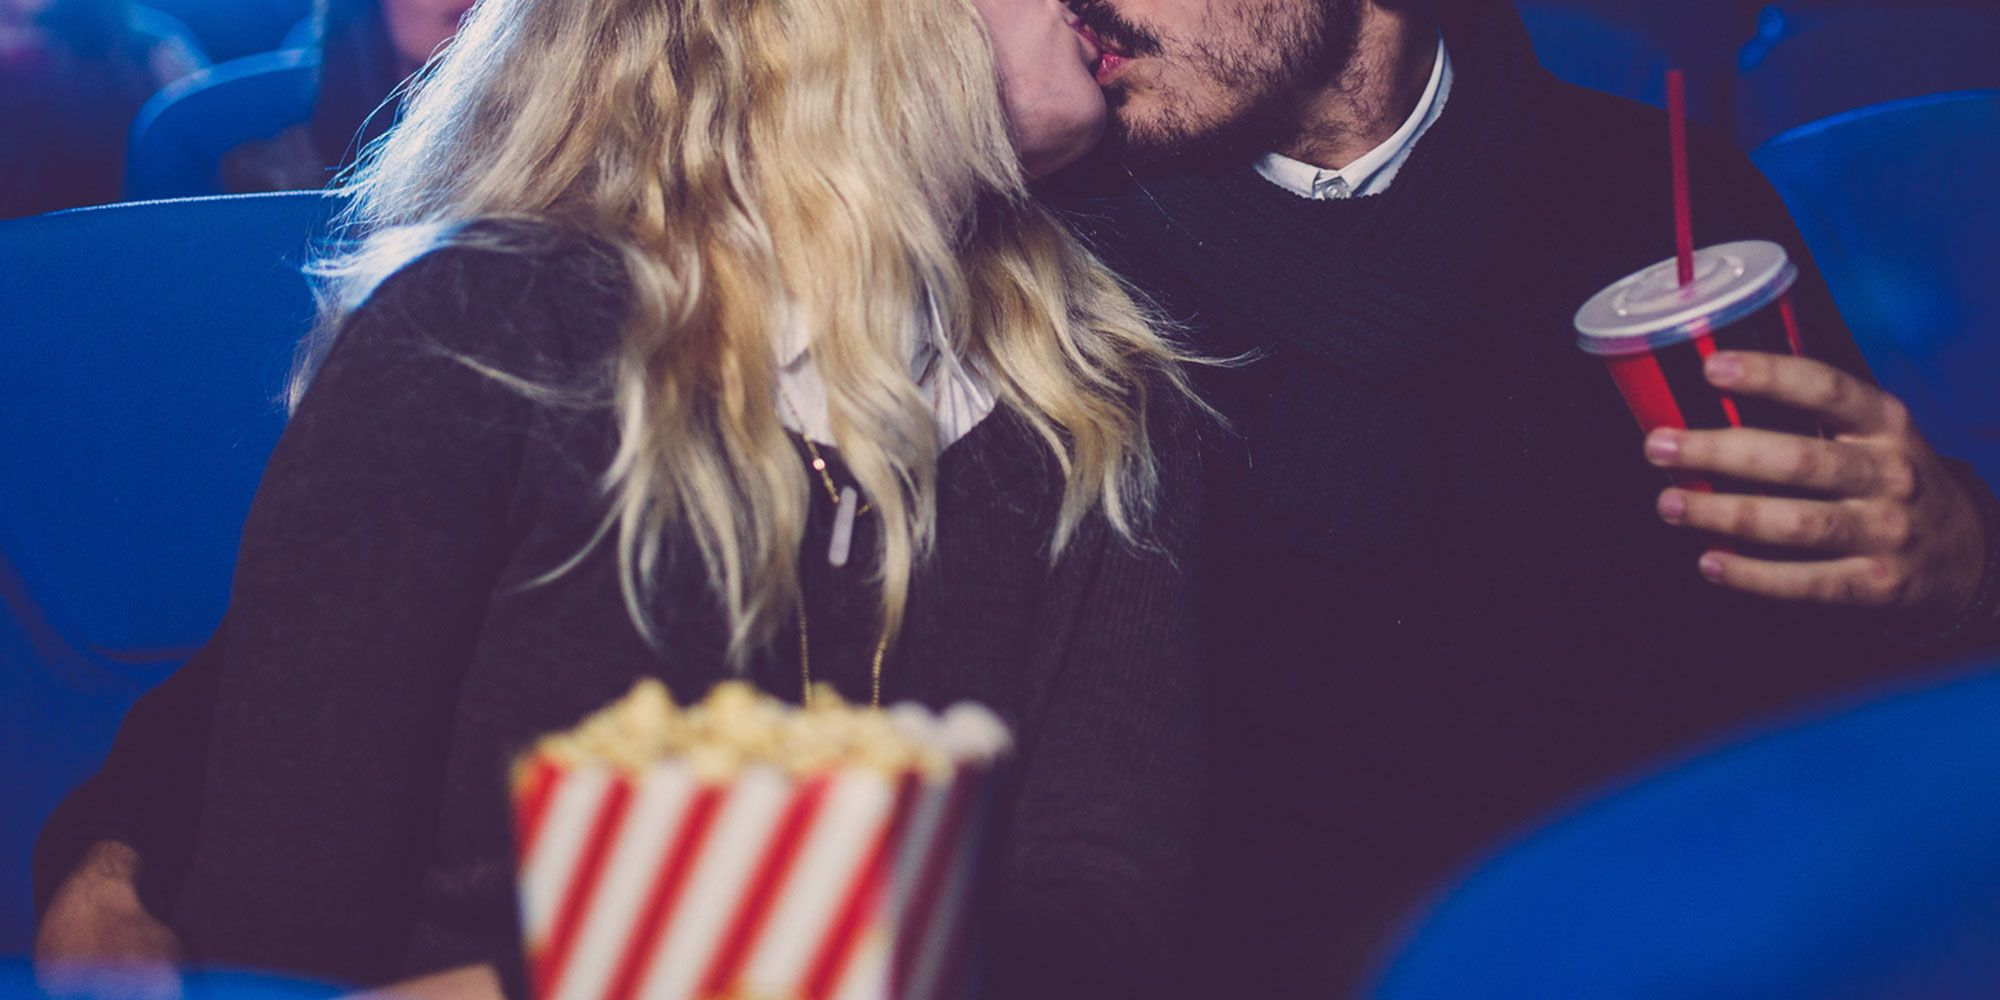 Couple kissing in the cinema